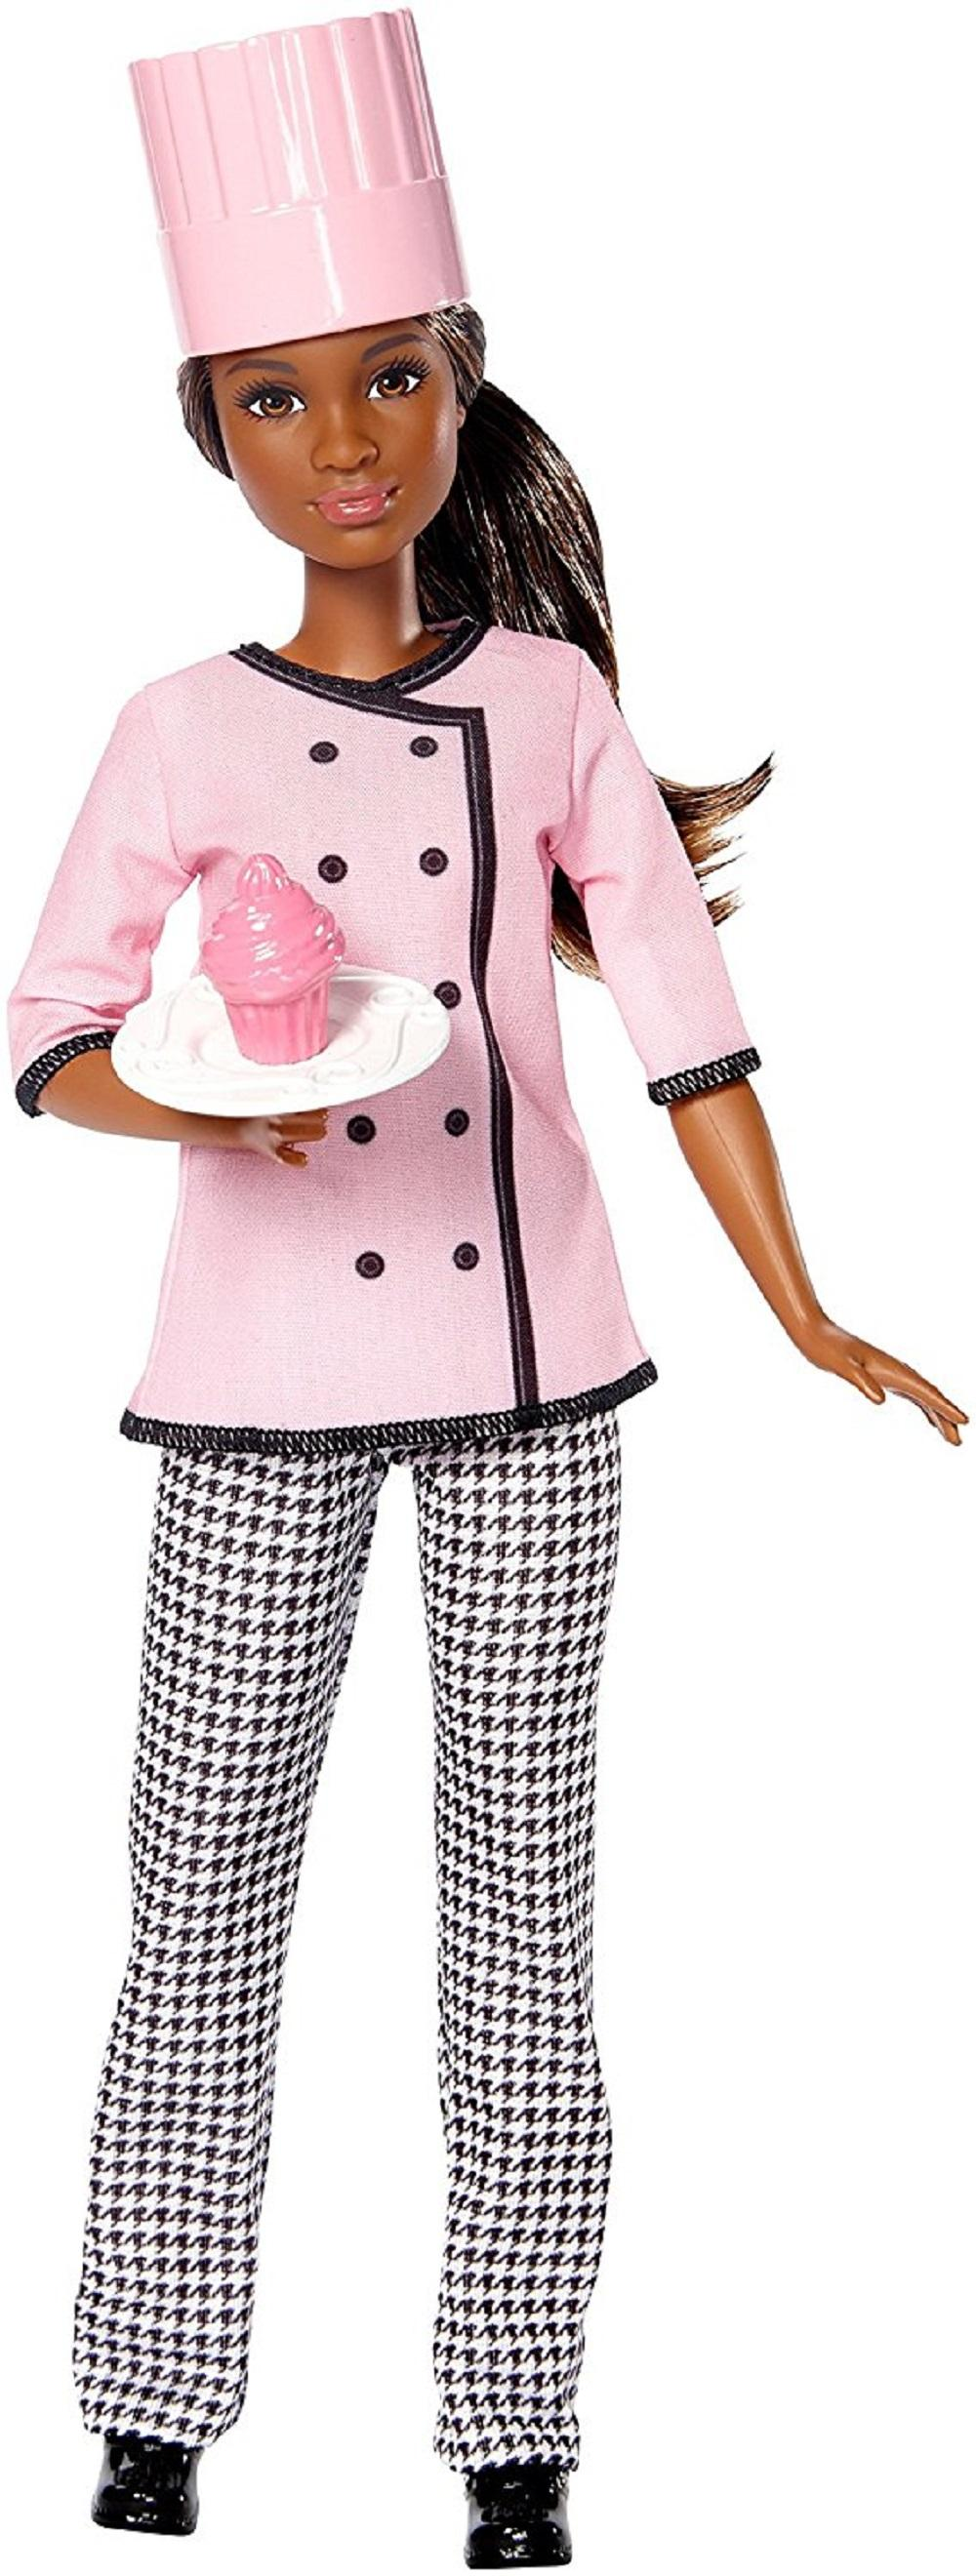 Amazon.com: Barbie Cupcake Chef Doll: Toys & Games